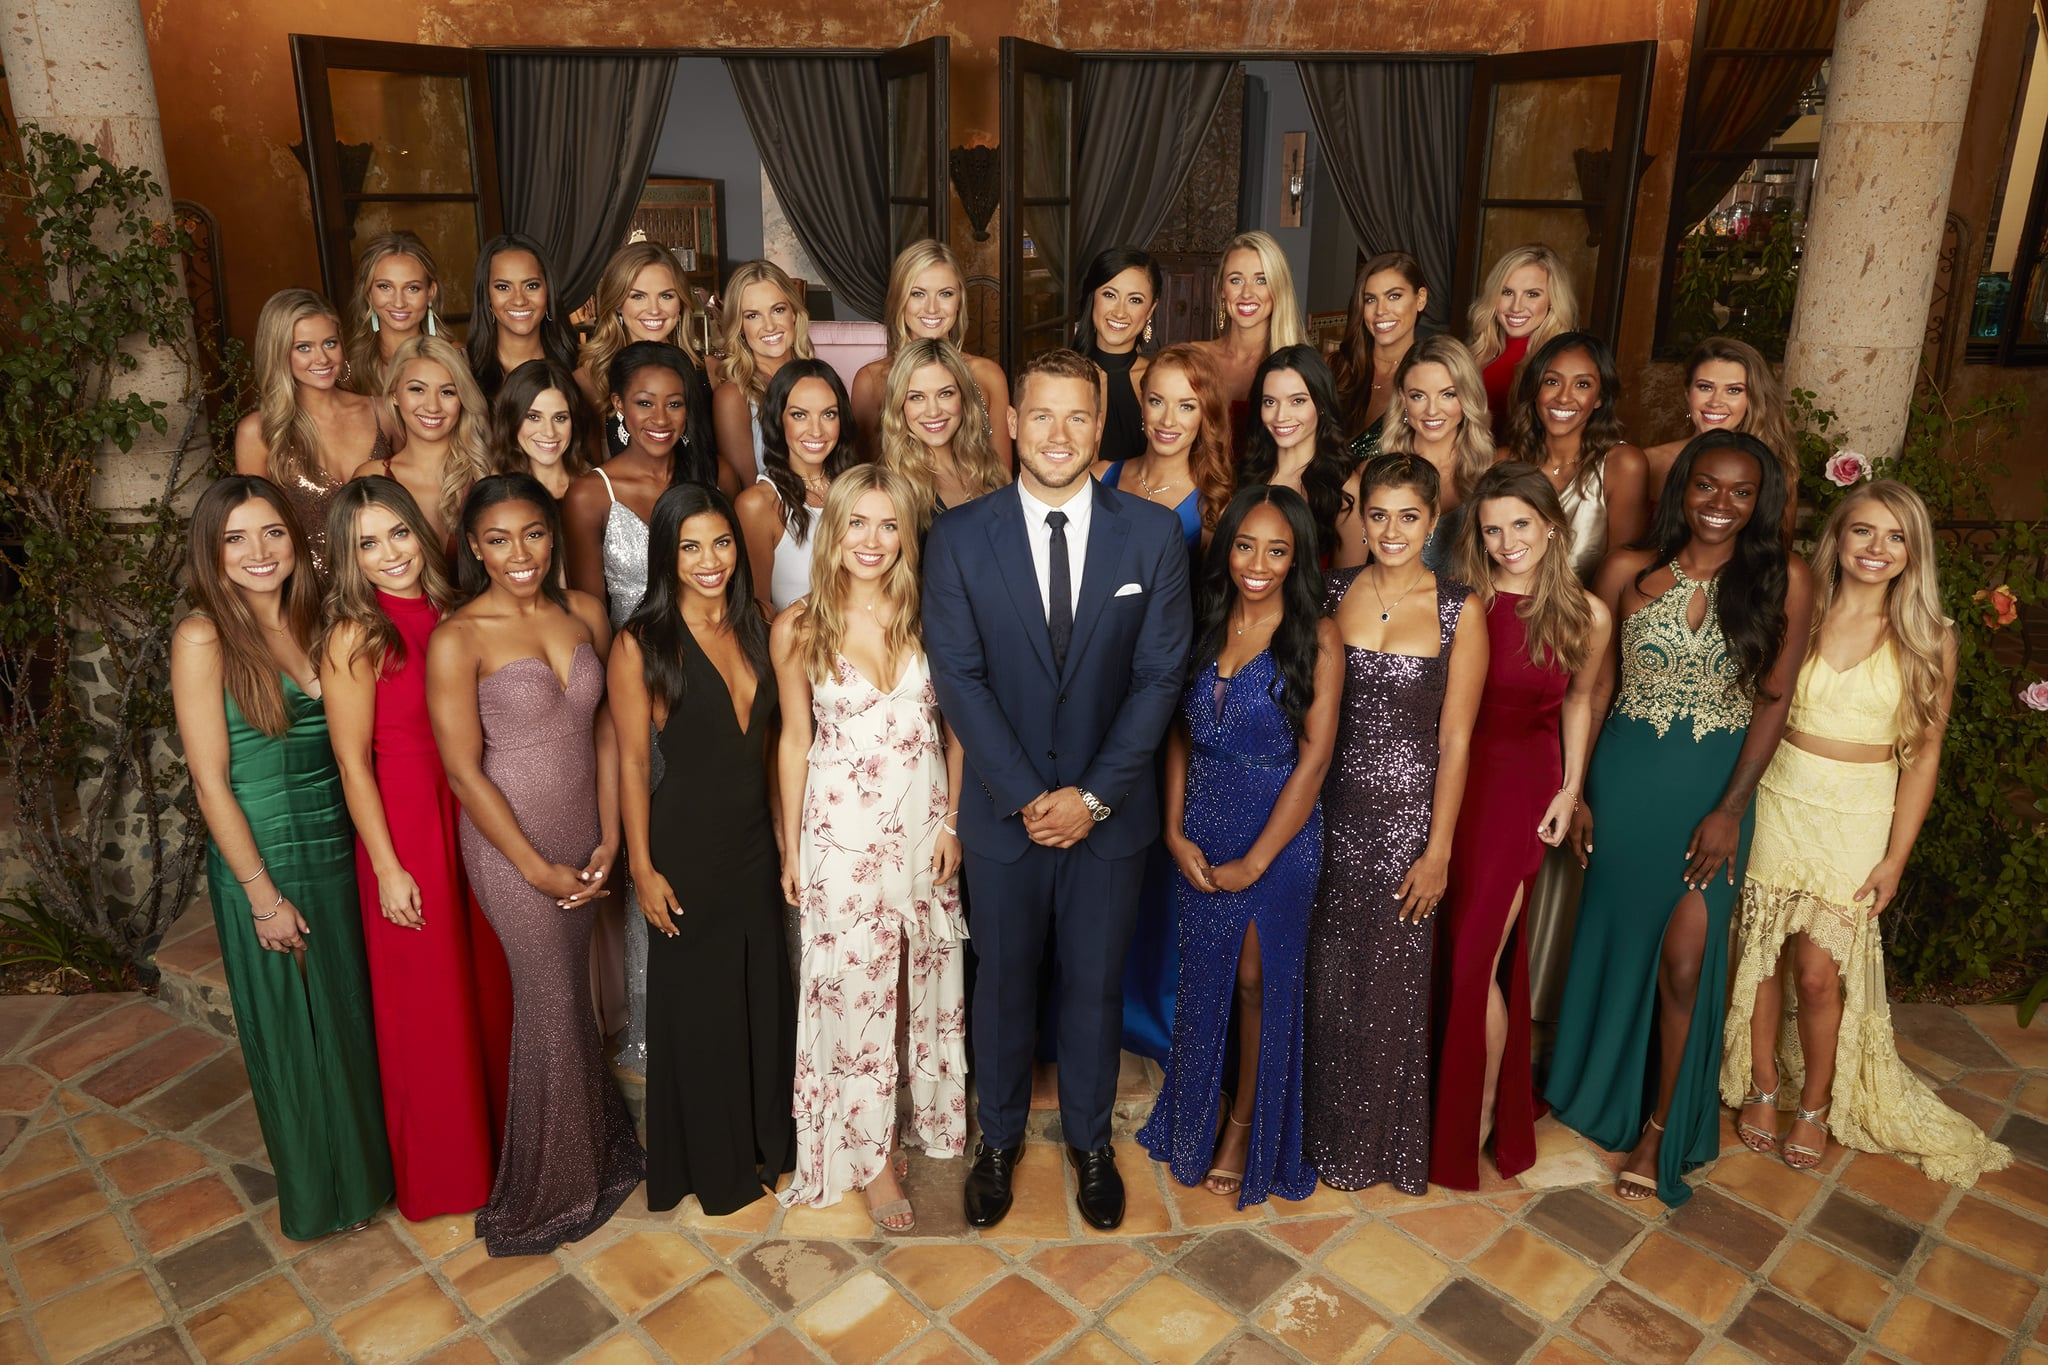 Do You Get Paid to Be on The Bachelor? | POPSUGAR Entertainment